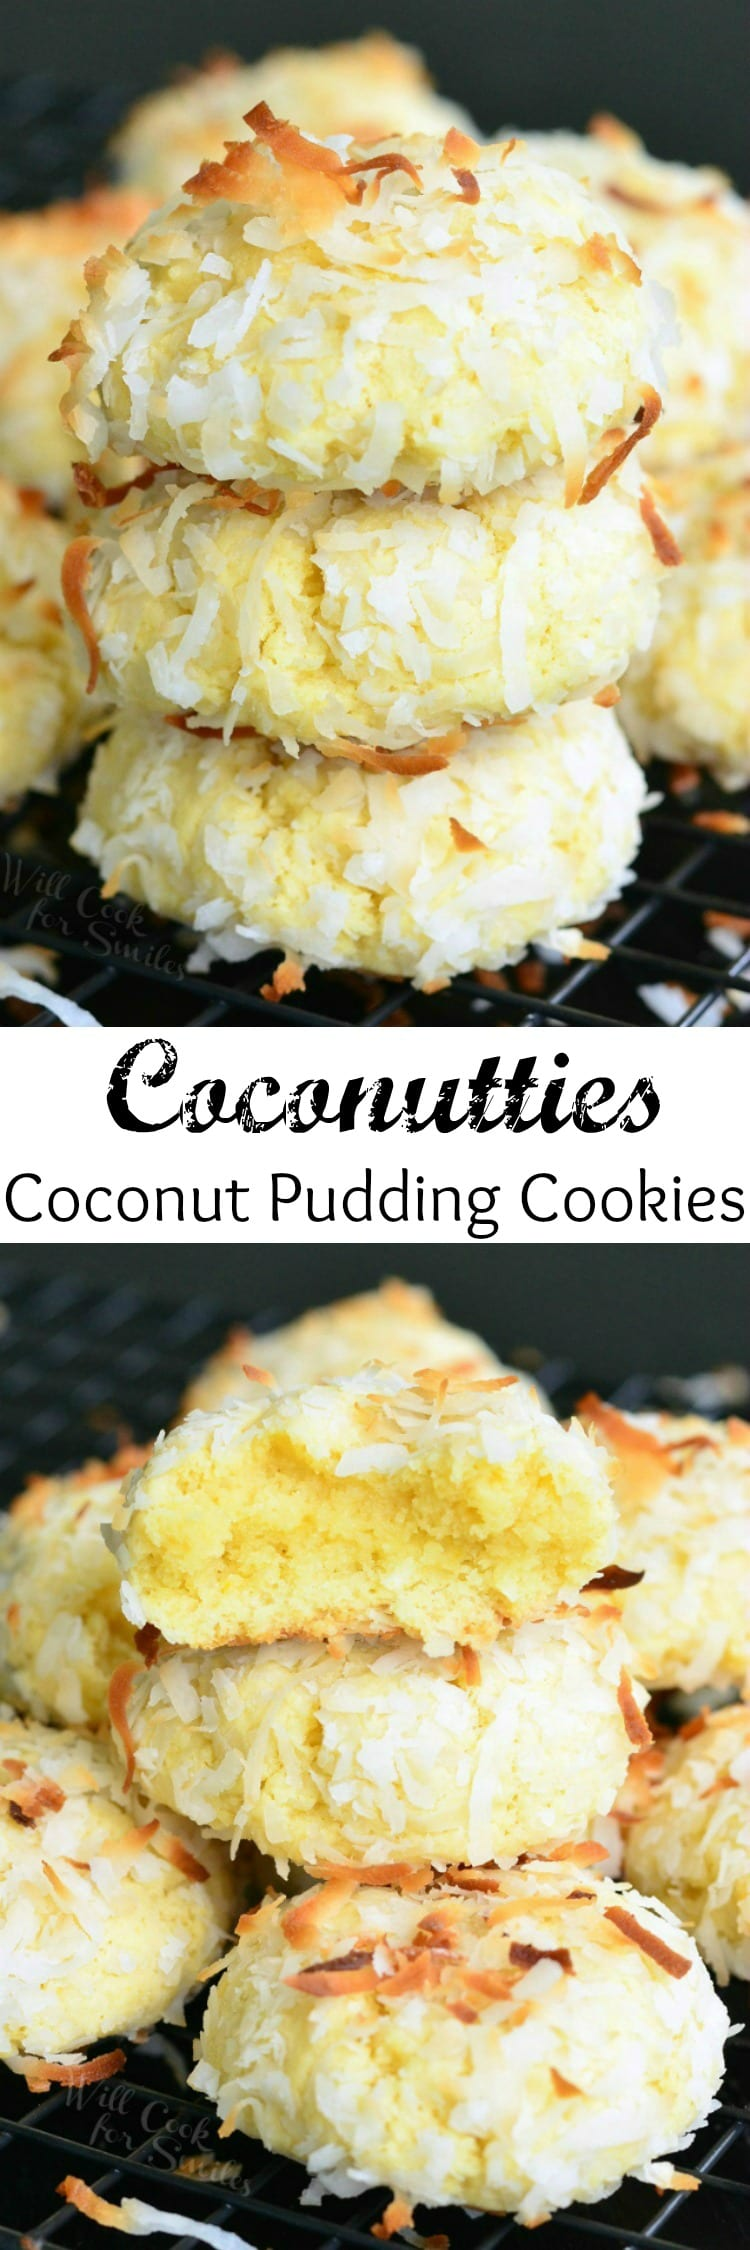 Coconutties - Coconut Pudding Cookies. It's hard to keep your hands away from the cookie jar when it's filled with these Coconutties.